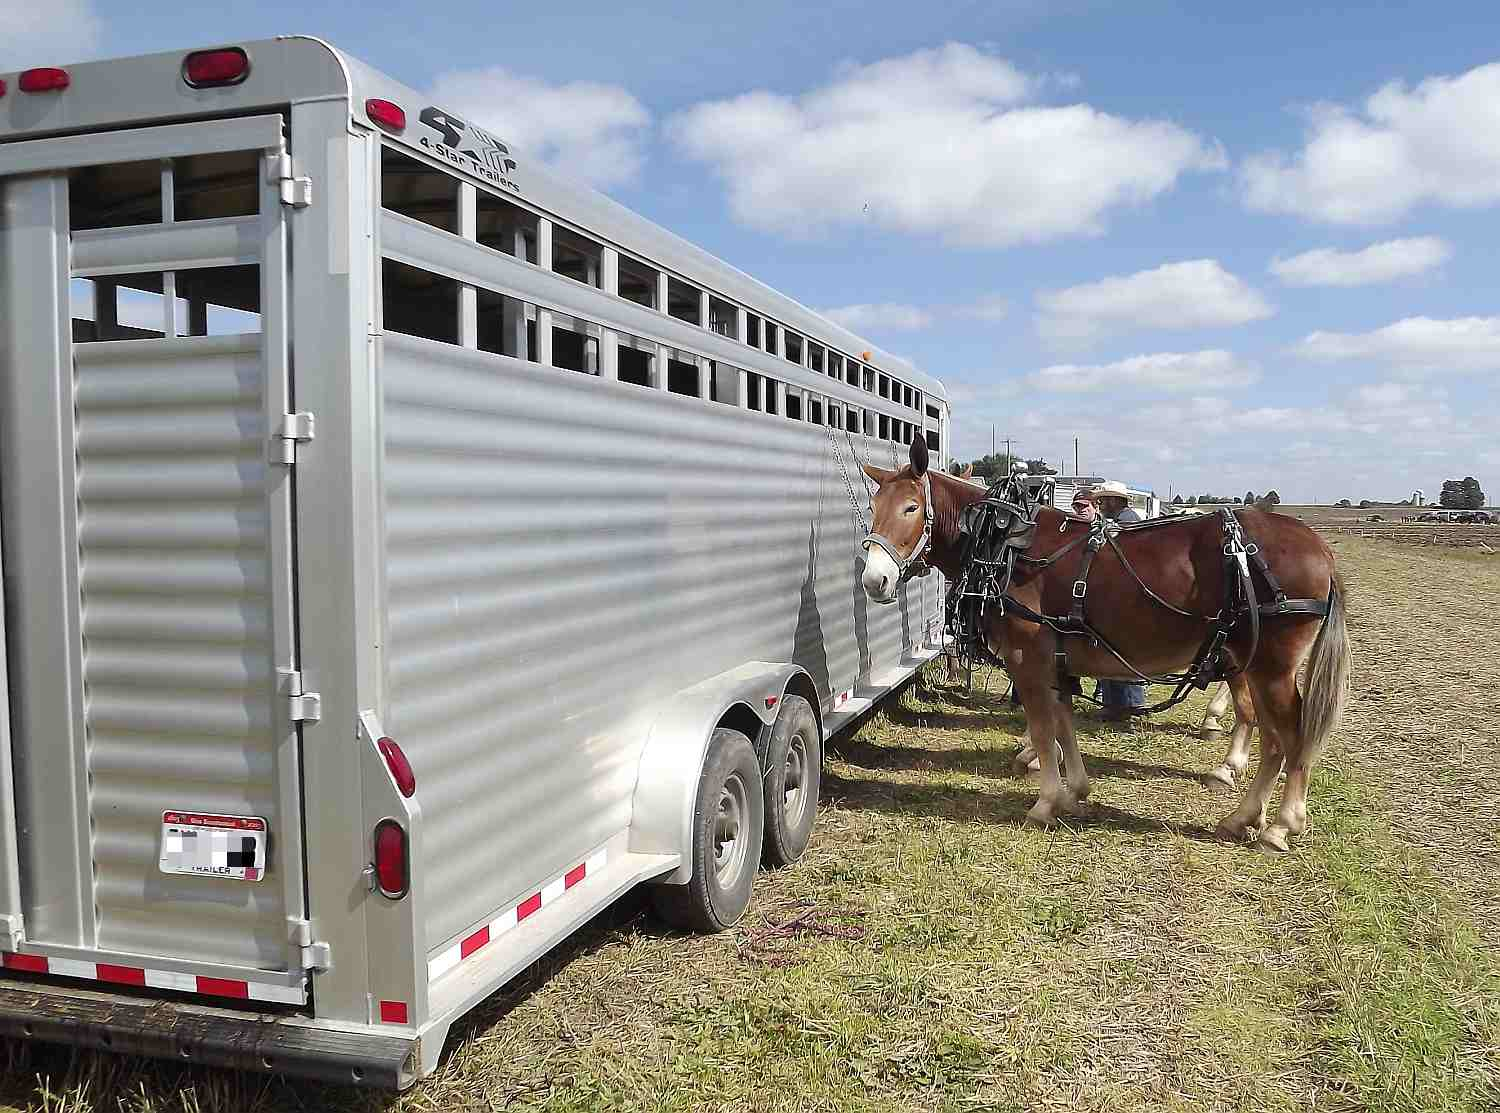 Mules tied to the side of an aluminum stock type trailer.